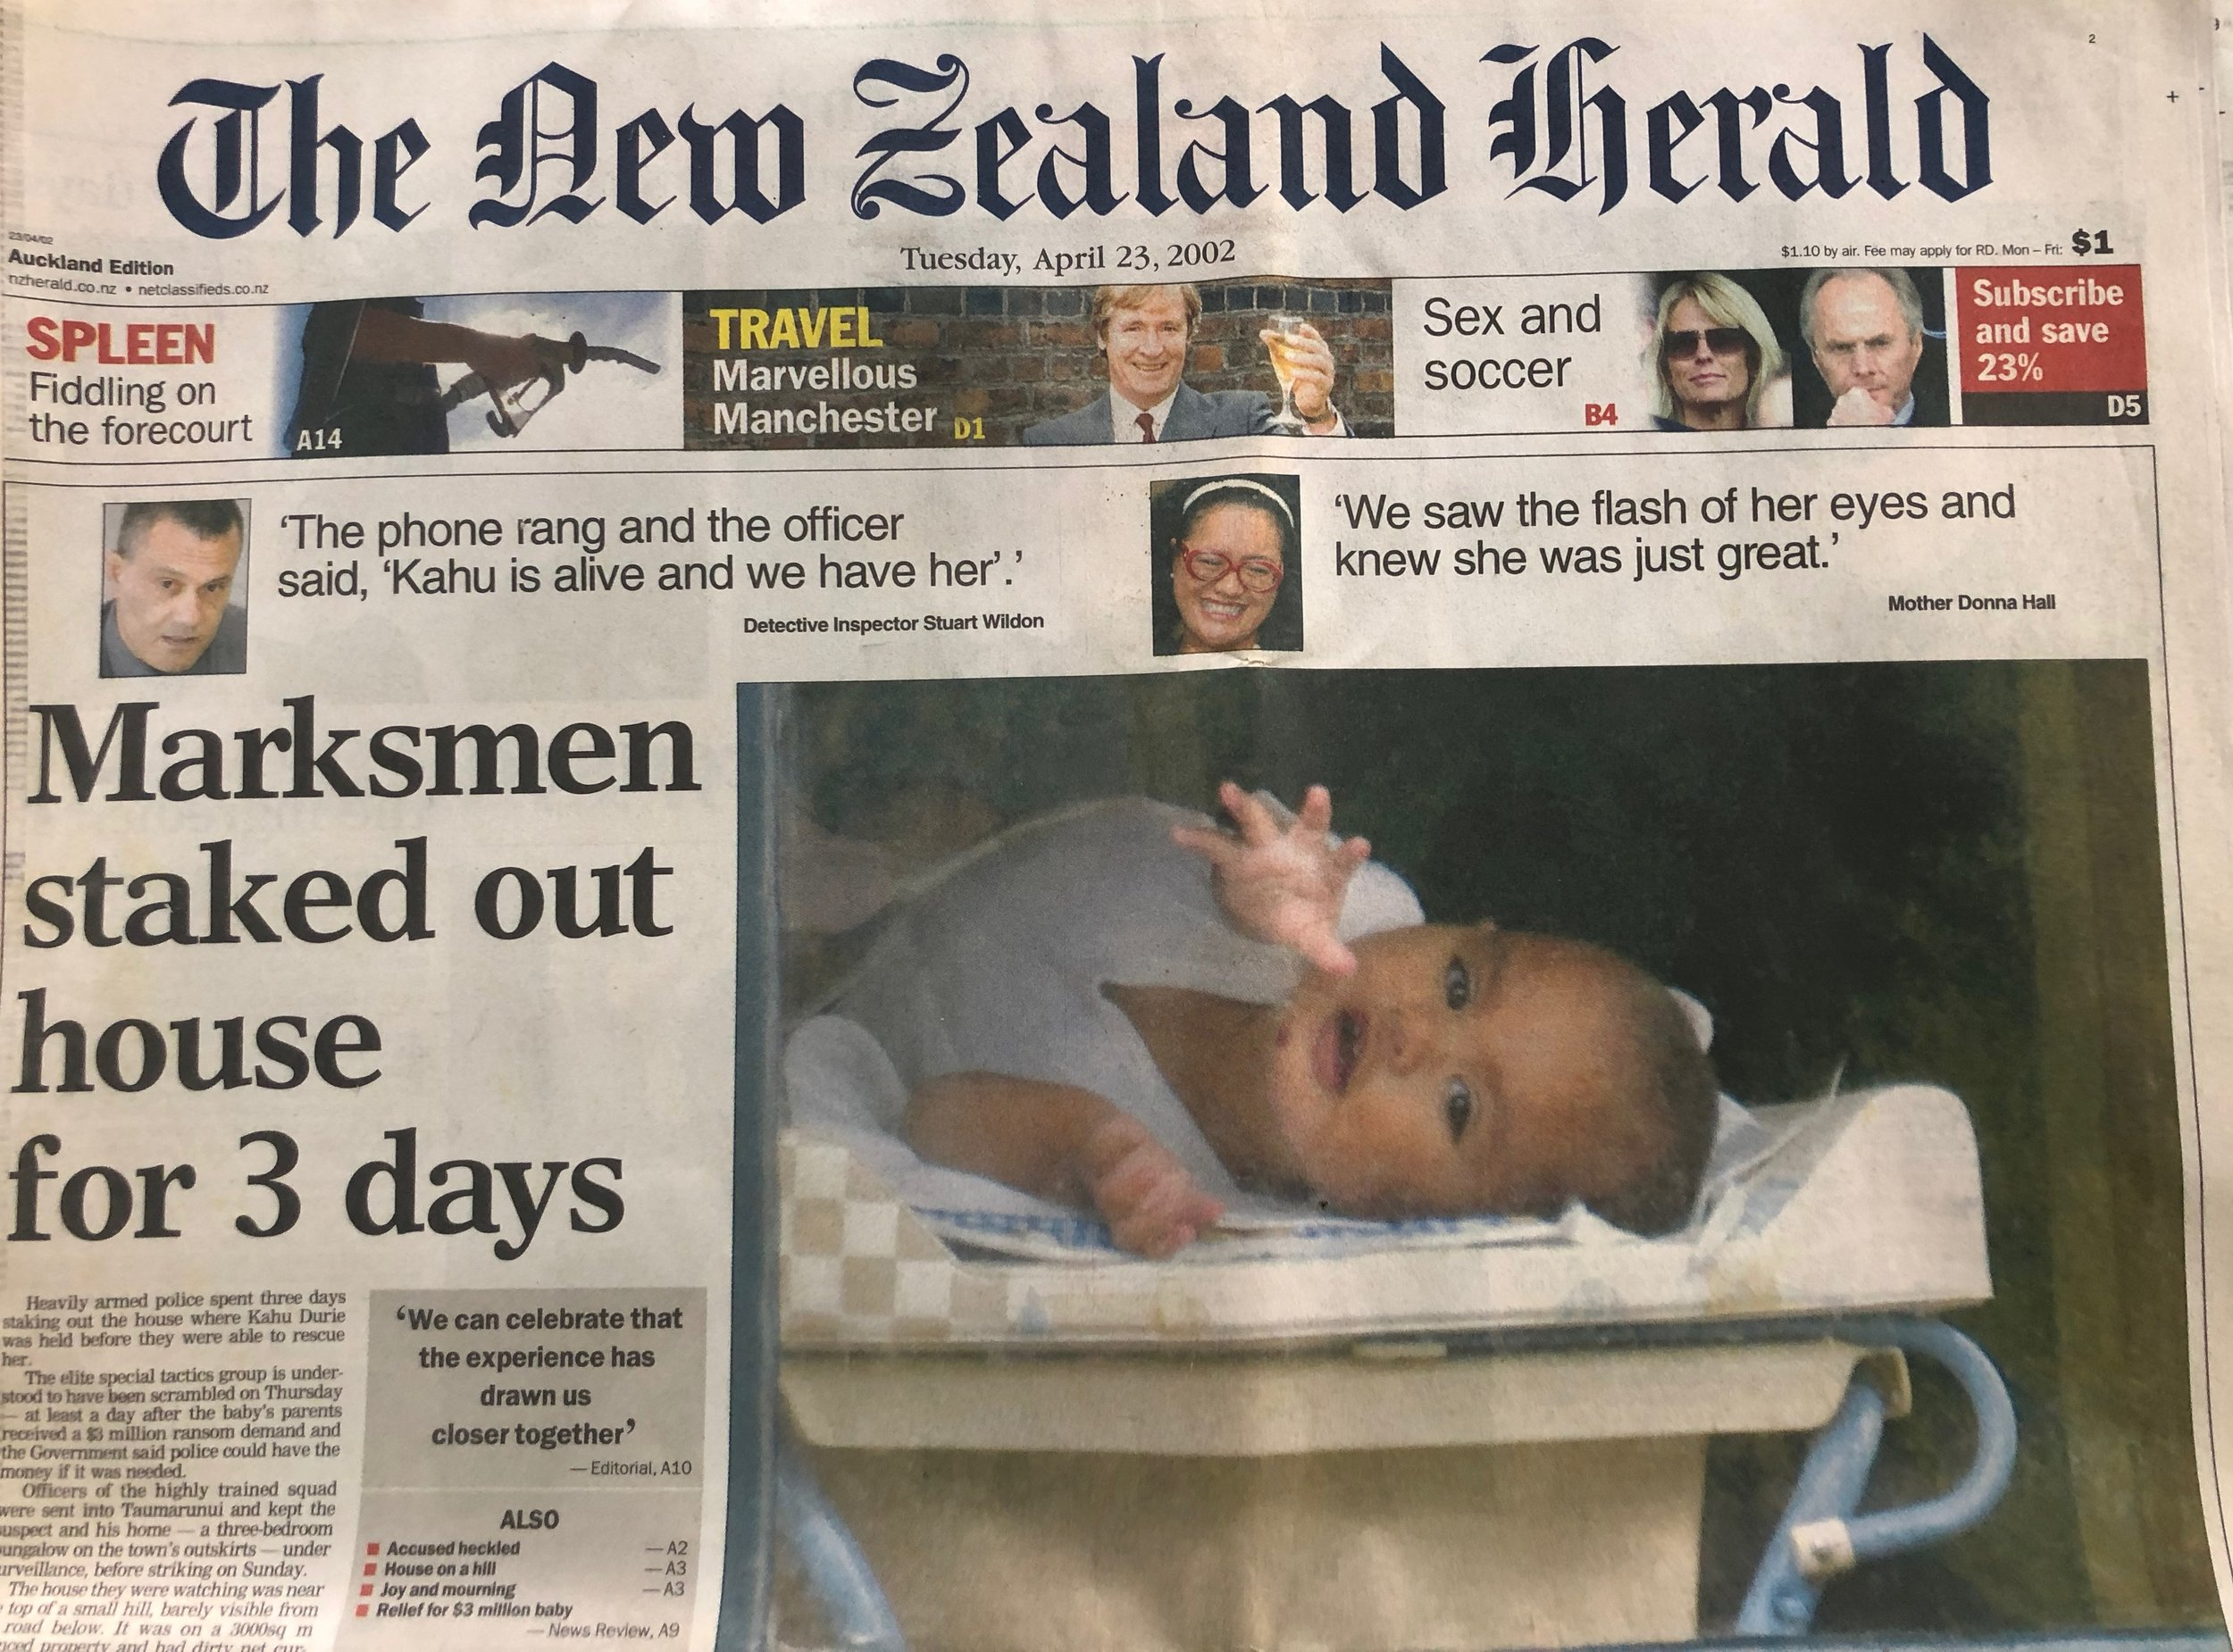 Learn about this hostage rescue - Baby Kahu, snatched from the streets of Wellington. A ten day hostage drama and a 3 million ransom. A story that gripped the nation. Hear how it all ends and the lessons that can apply to successful business team development